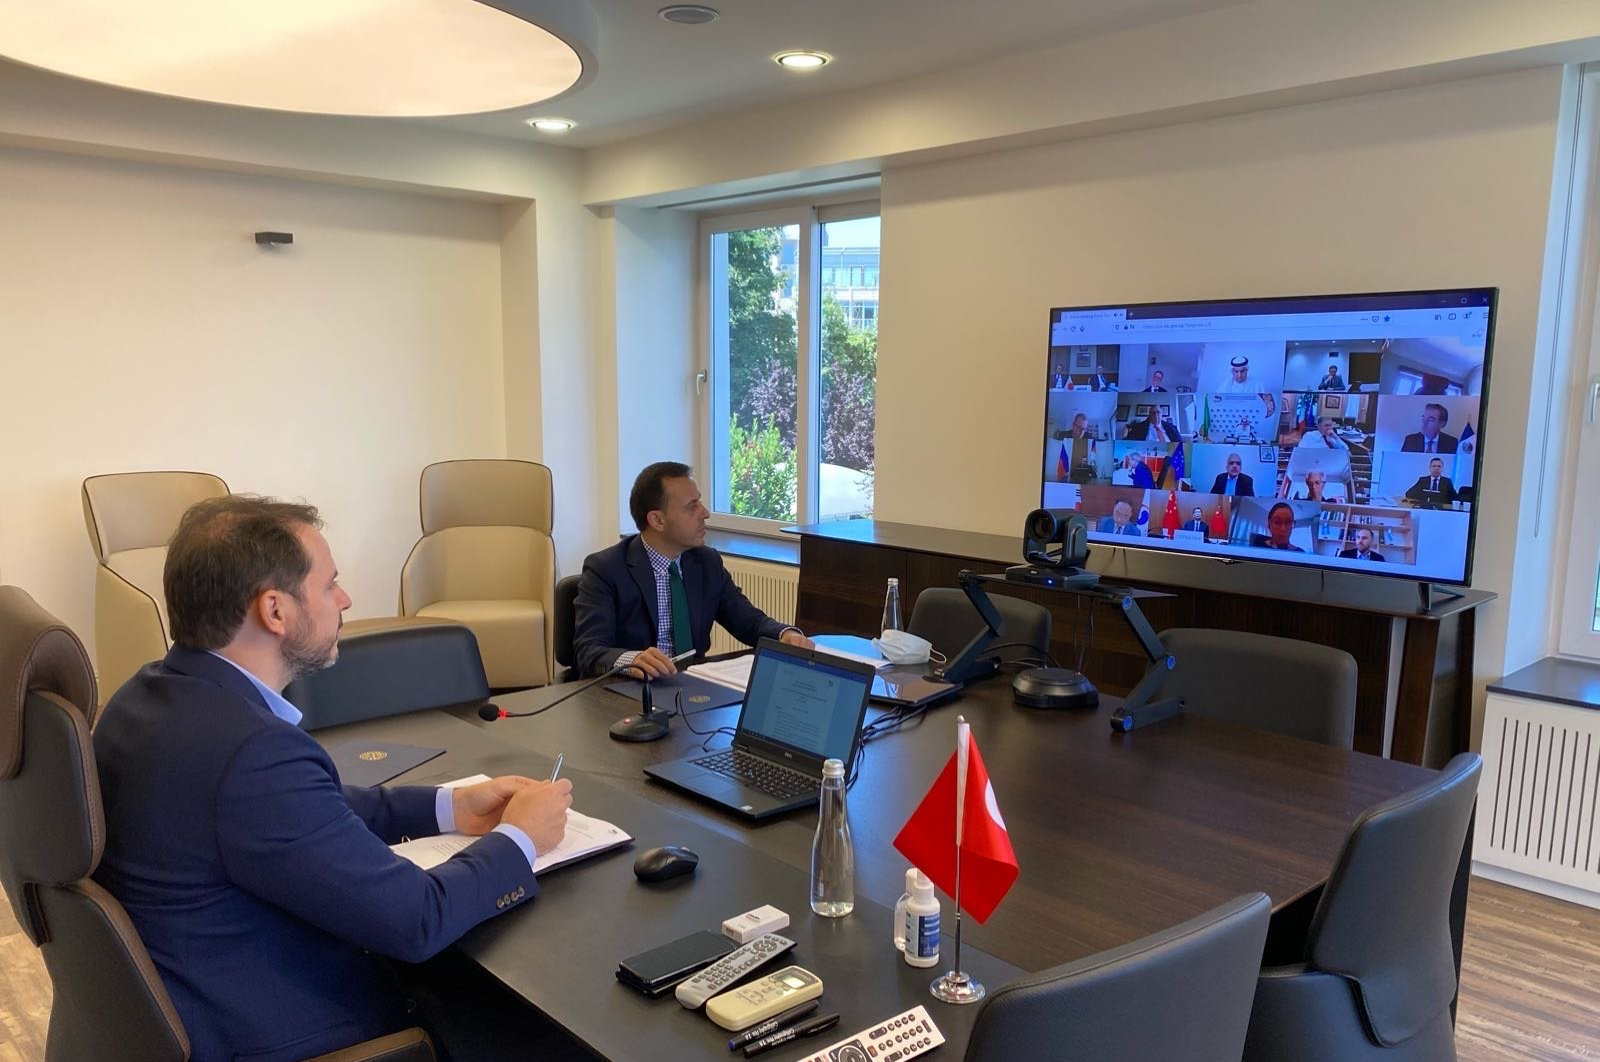 Turkish Minister of Finance Berat Albayrak attends a virtual meeting of G20 finance ministers and central bank governors in Ankara, Turkey July 18, 2020. (DHA Photo)